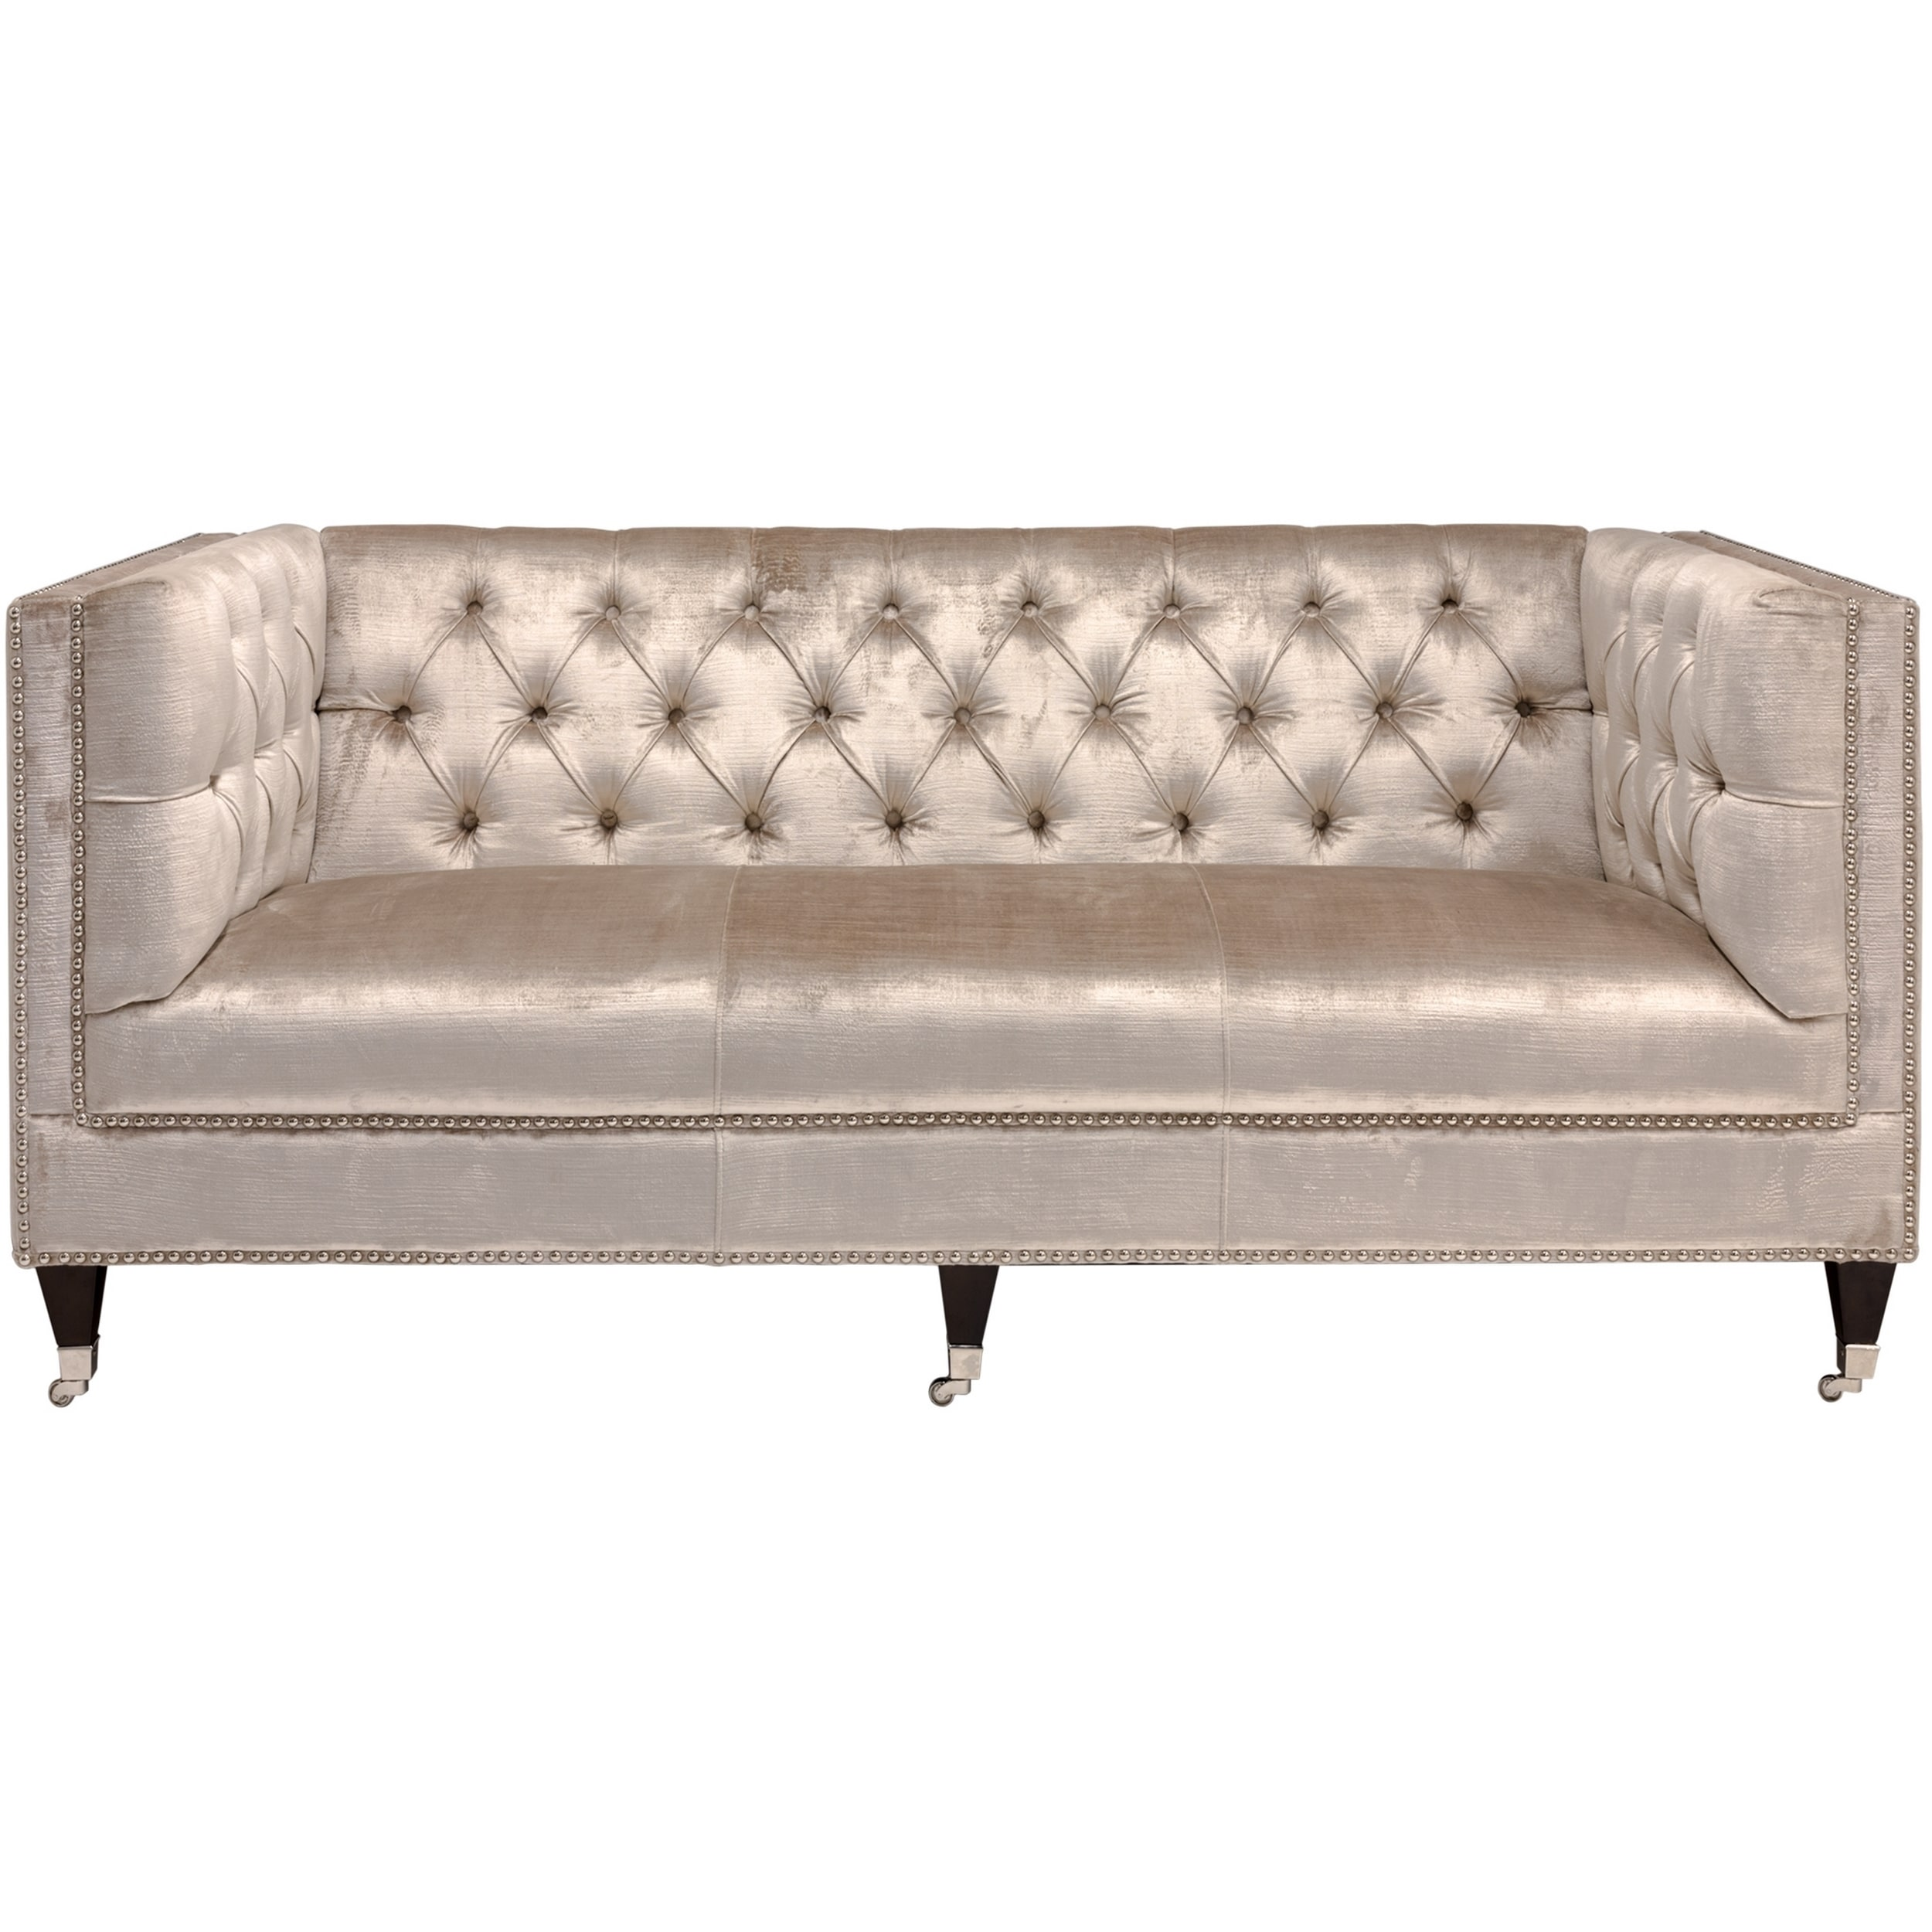 Safavieh Couture Loveseat